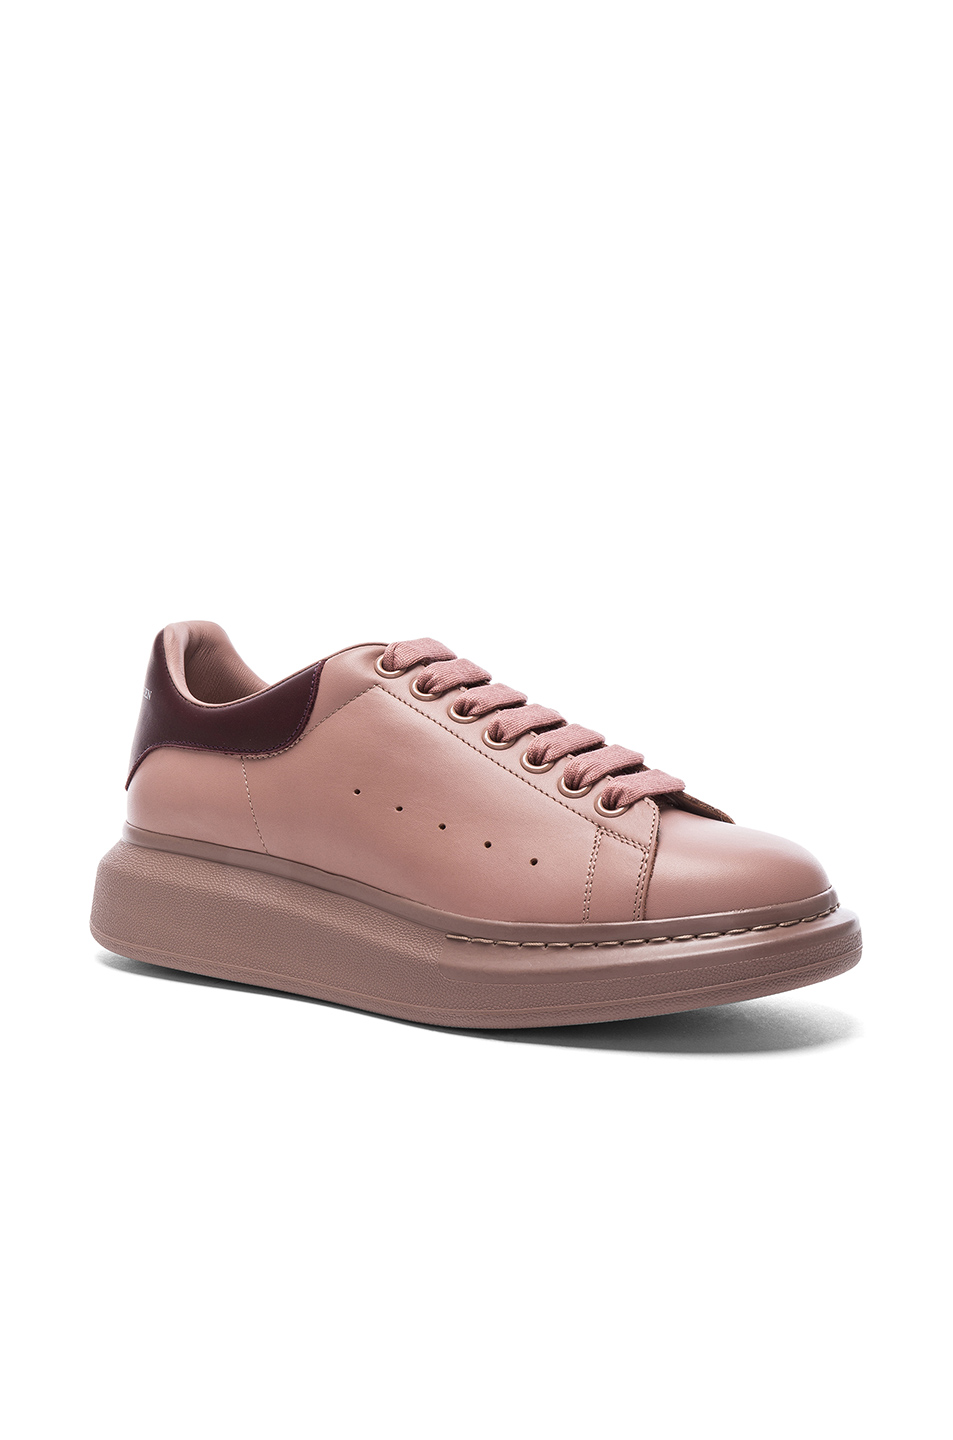 Alexander McQueen Leather Platform Low Top Sneakers in Purple